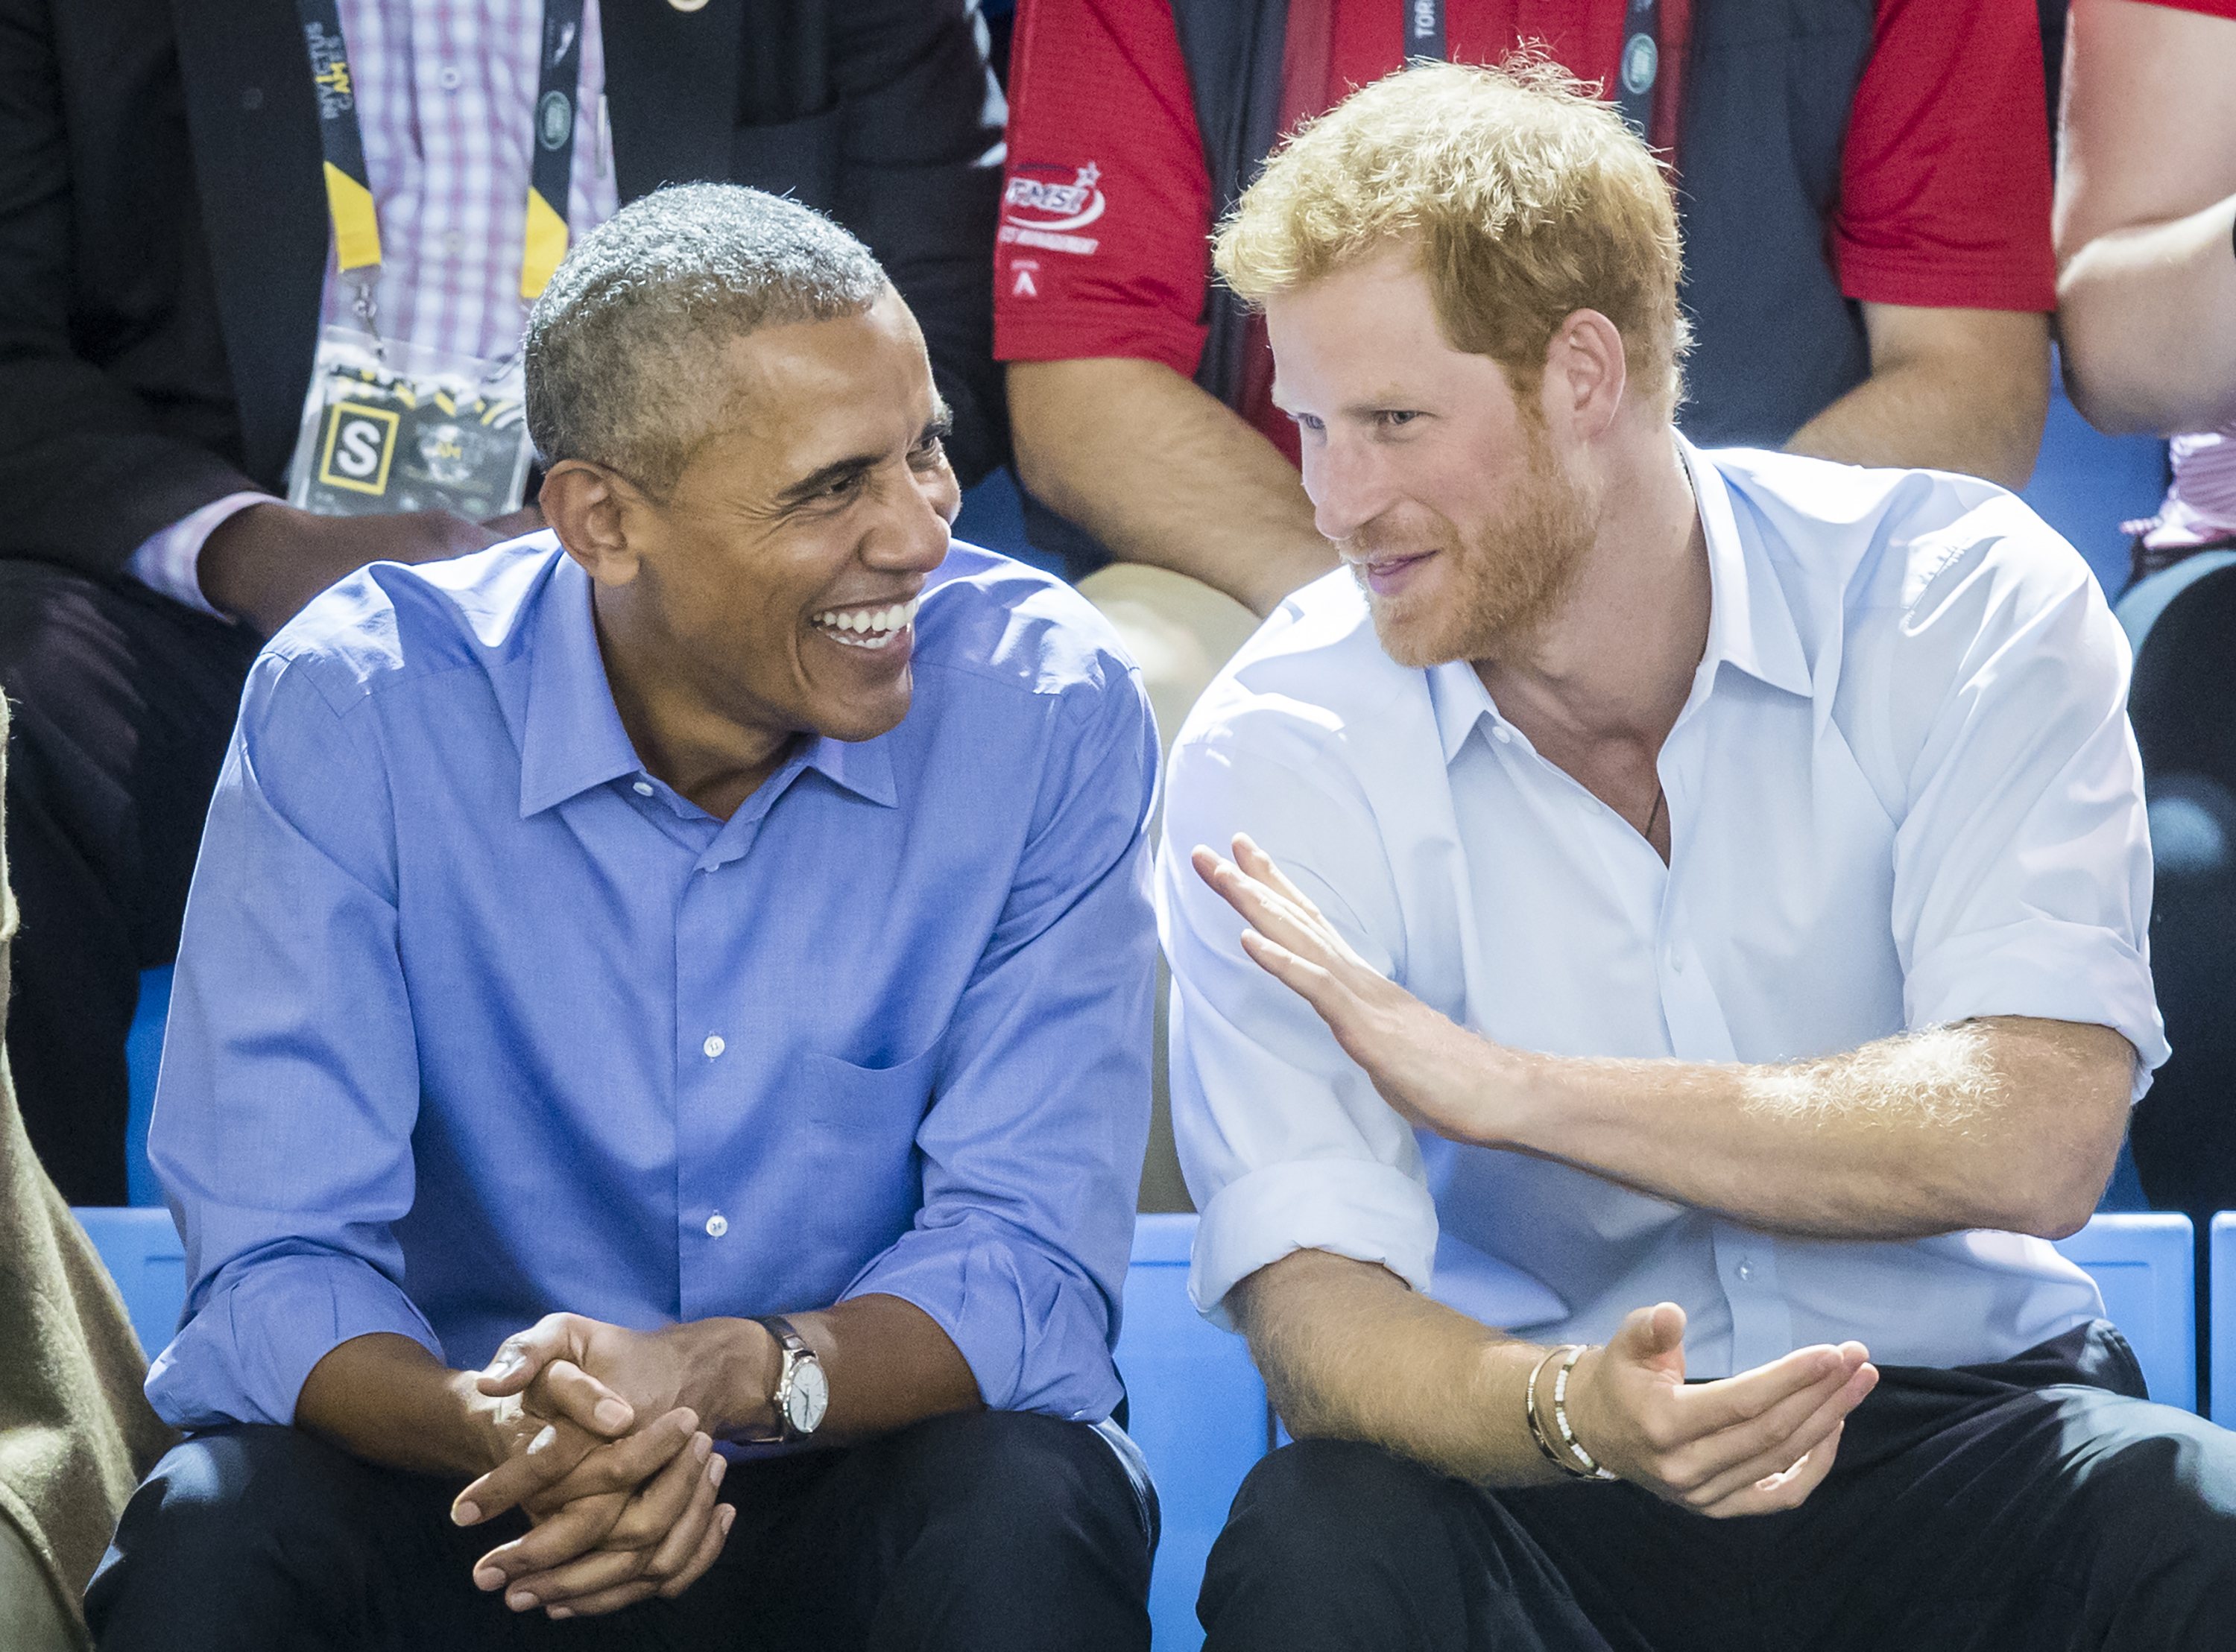 Prince Harry Warns Barack Obama ... Don't Make Me Give You 'the Face'